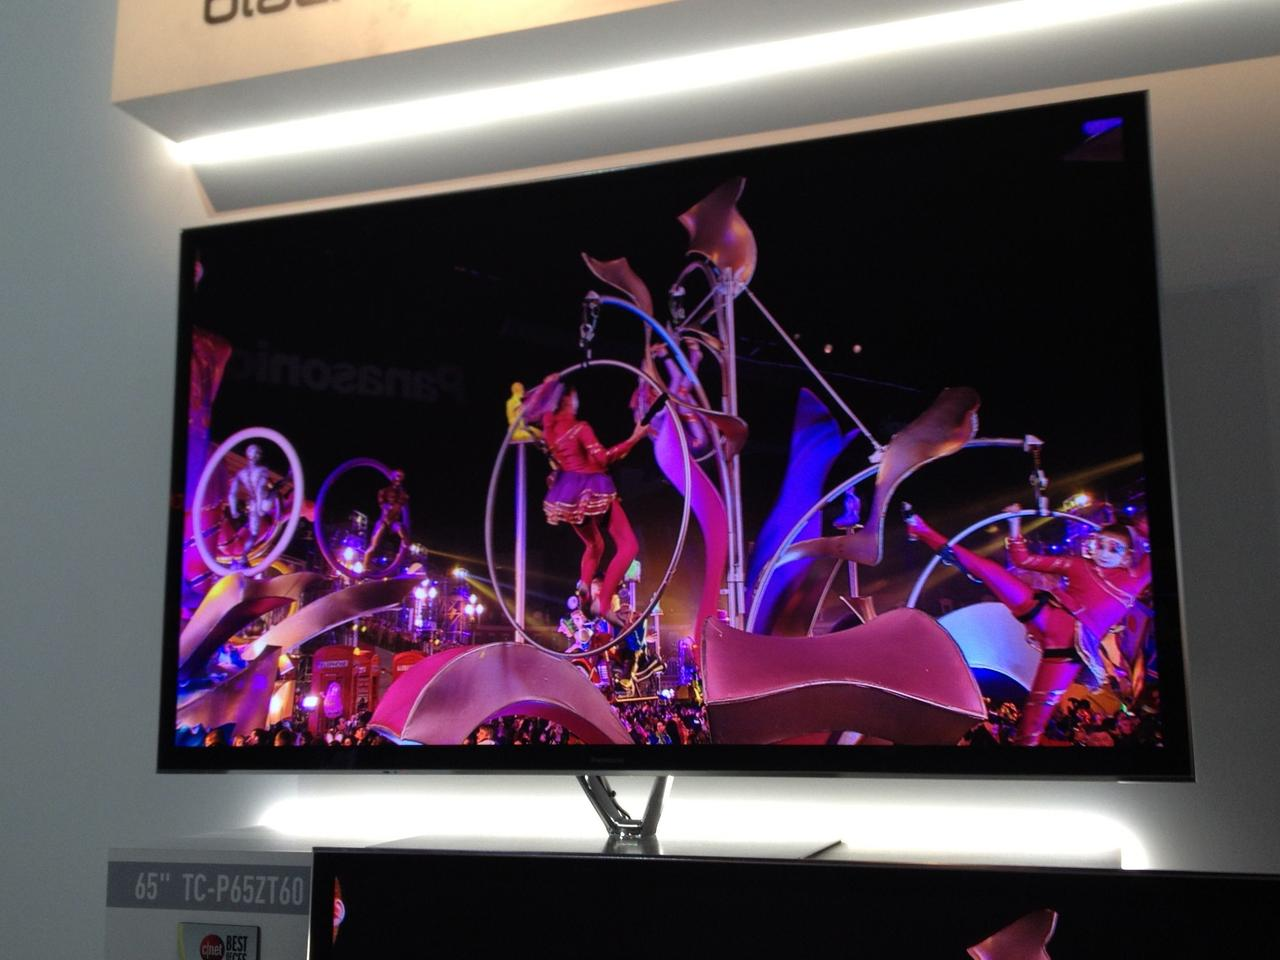 Panasonic's 2013 Smart TV lineup, including the flagship ZT60 series, will have speech recognition powered by Dragon TV